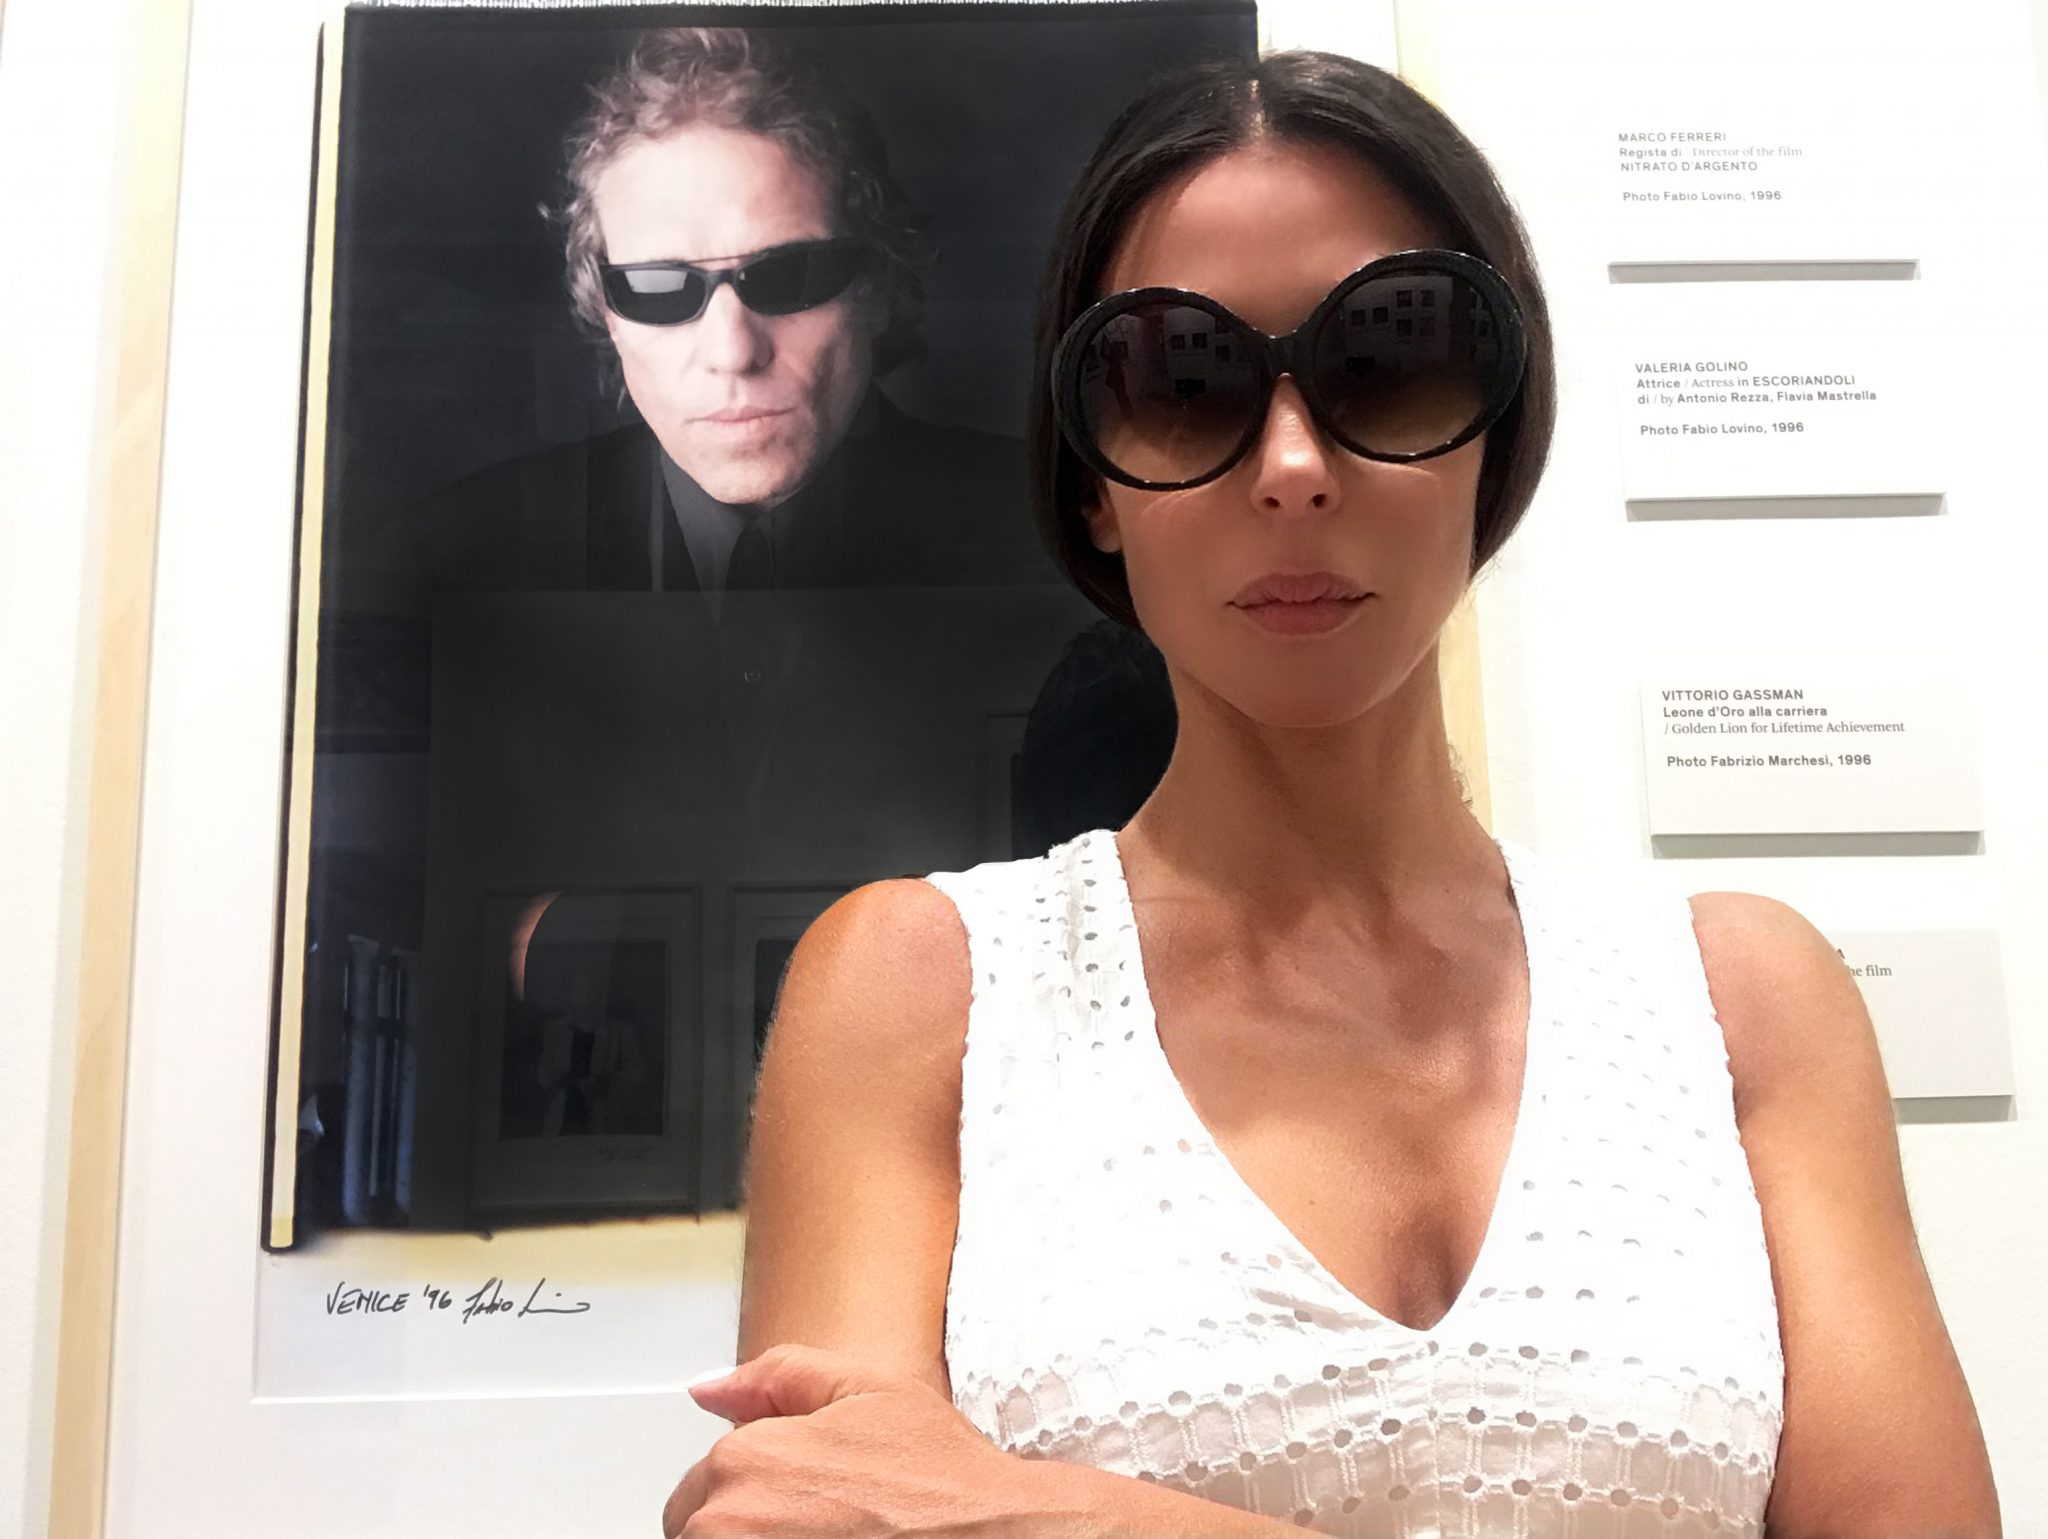 "#SELFIEADARTE ""The last day of your life is still going to be a day."" #AbelFerrara (1996) #RitrattiOpereUniche @BiennaleCinema #LidoDiVenezia @CleliaPatella"